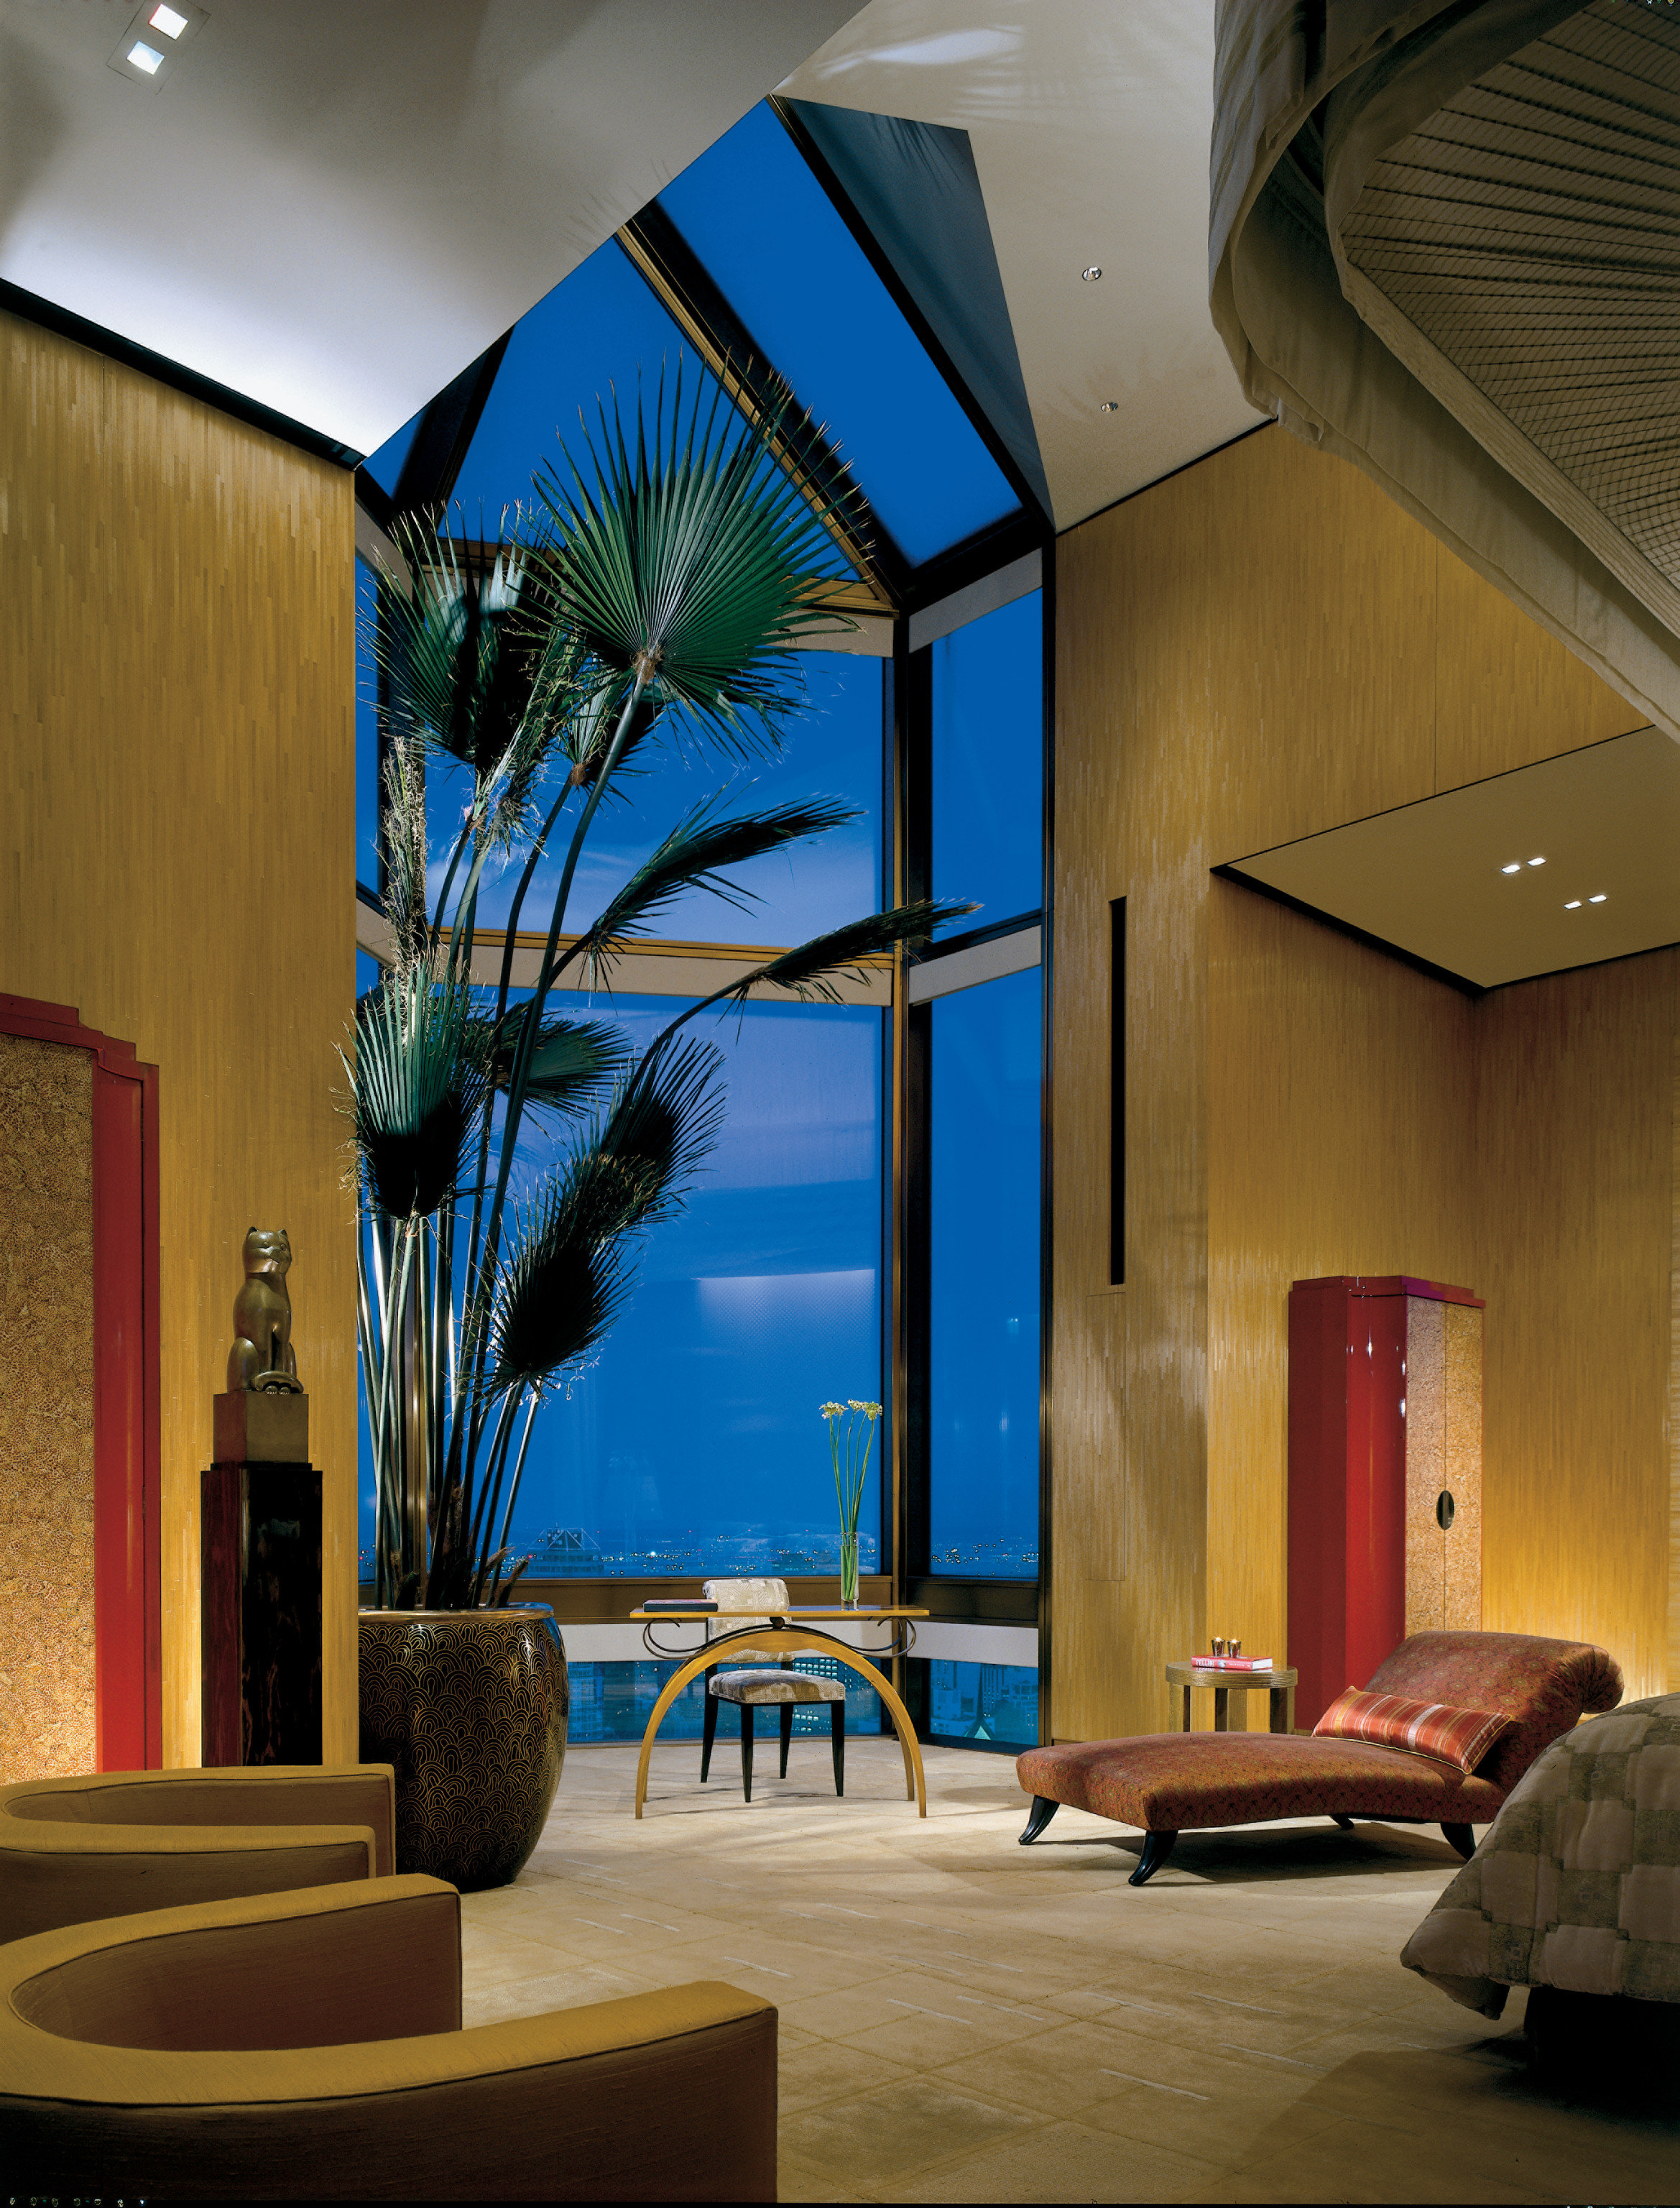 Hotels Luxury Travel indoor wall room ceiling interior design Architecture Lobby home house daylighting window furniture wood living room apartment estate condominium area